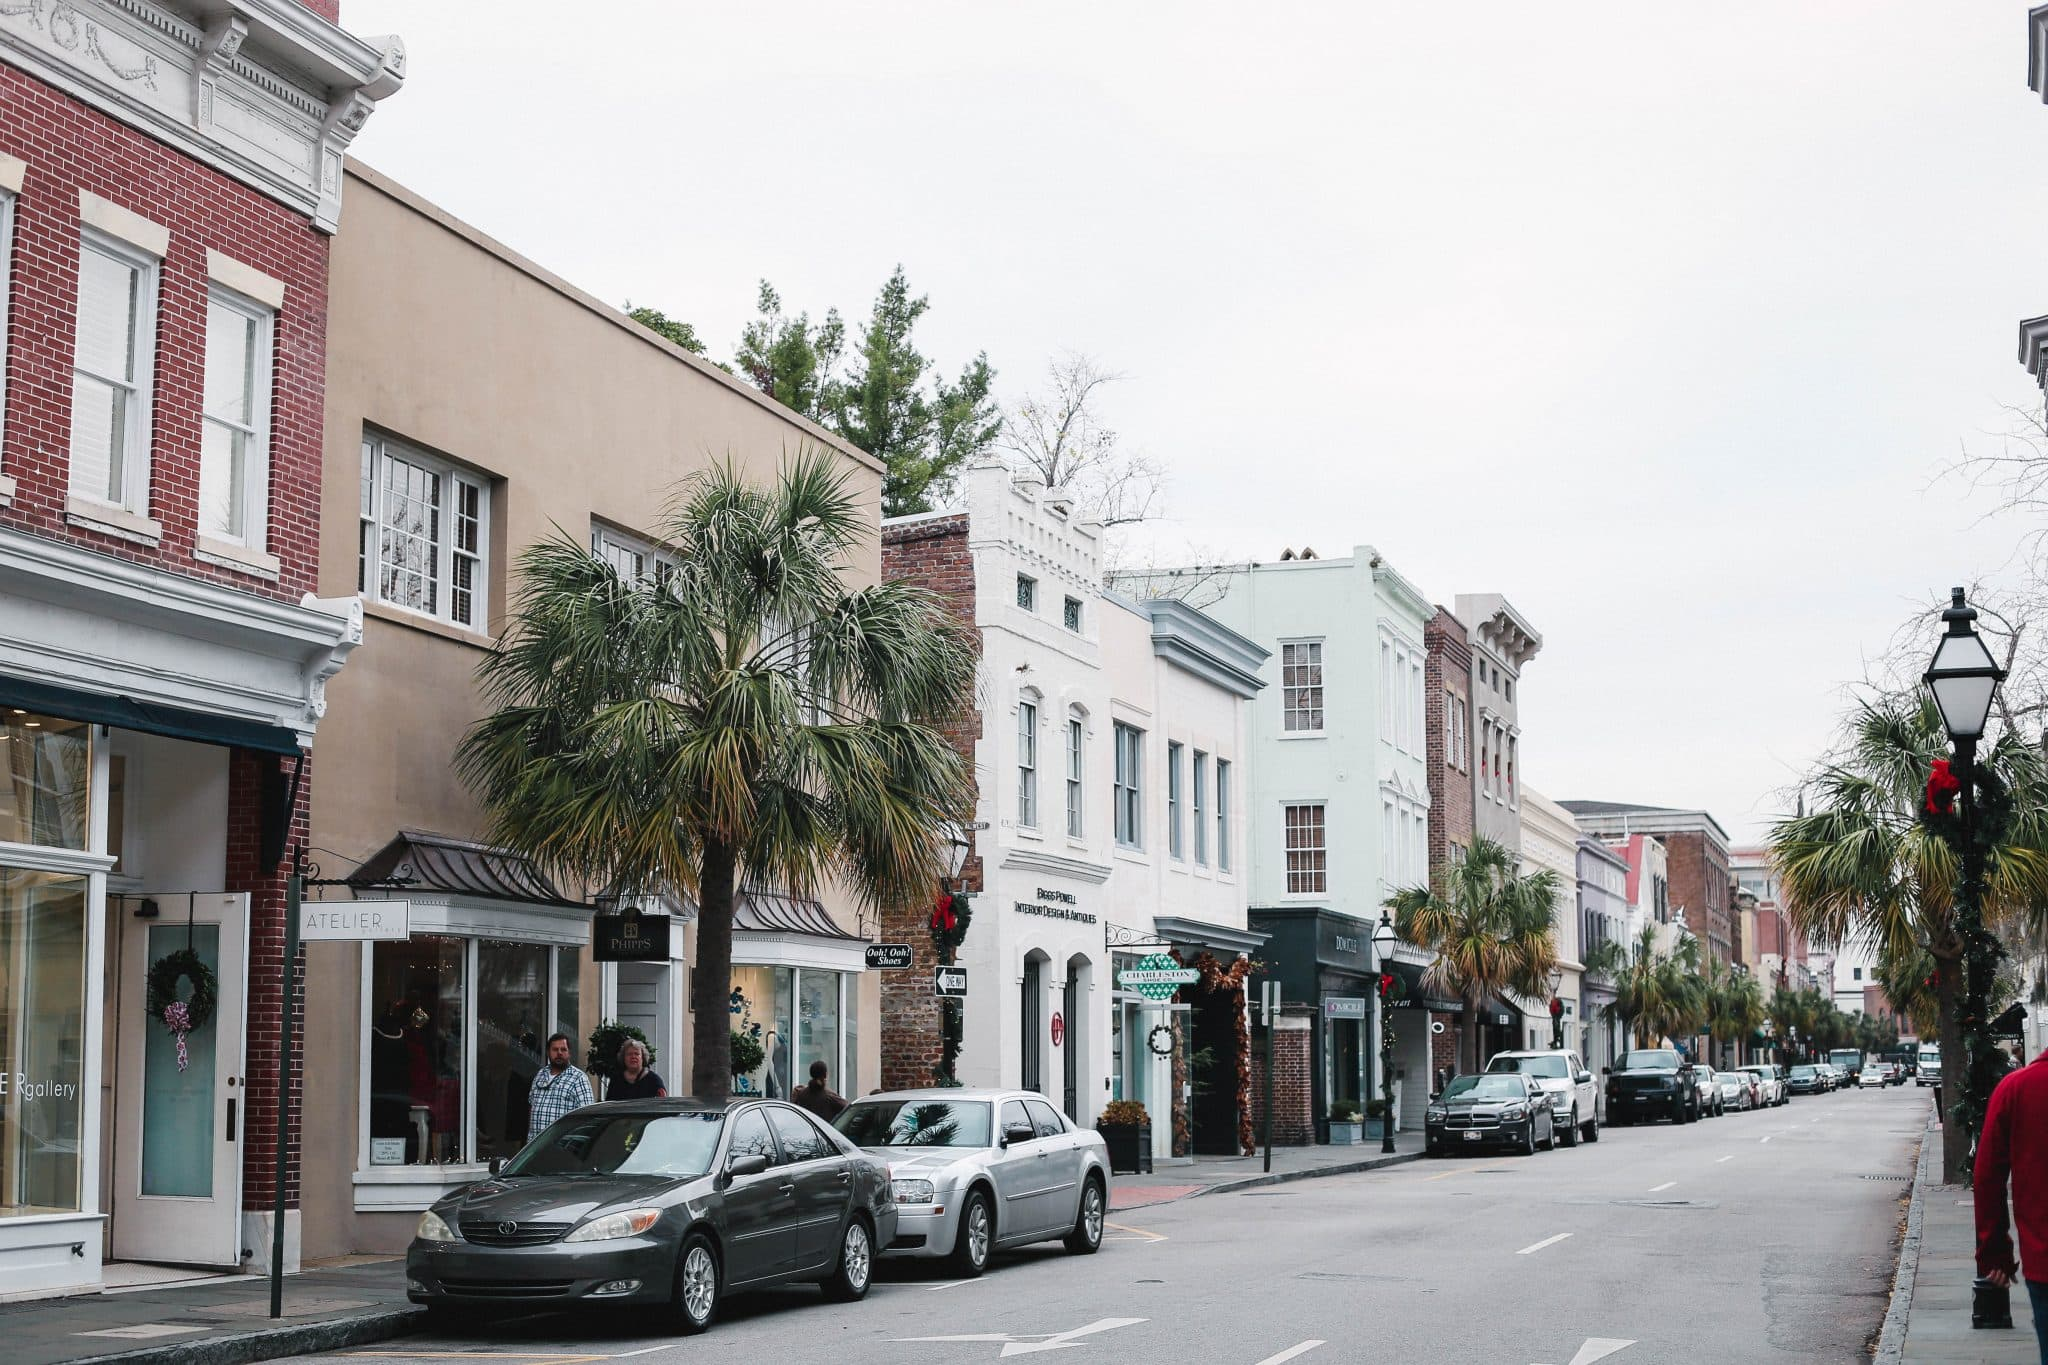 downtown charleston shopping, pretty in the pines